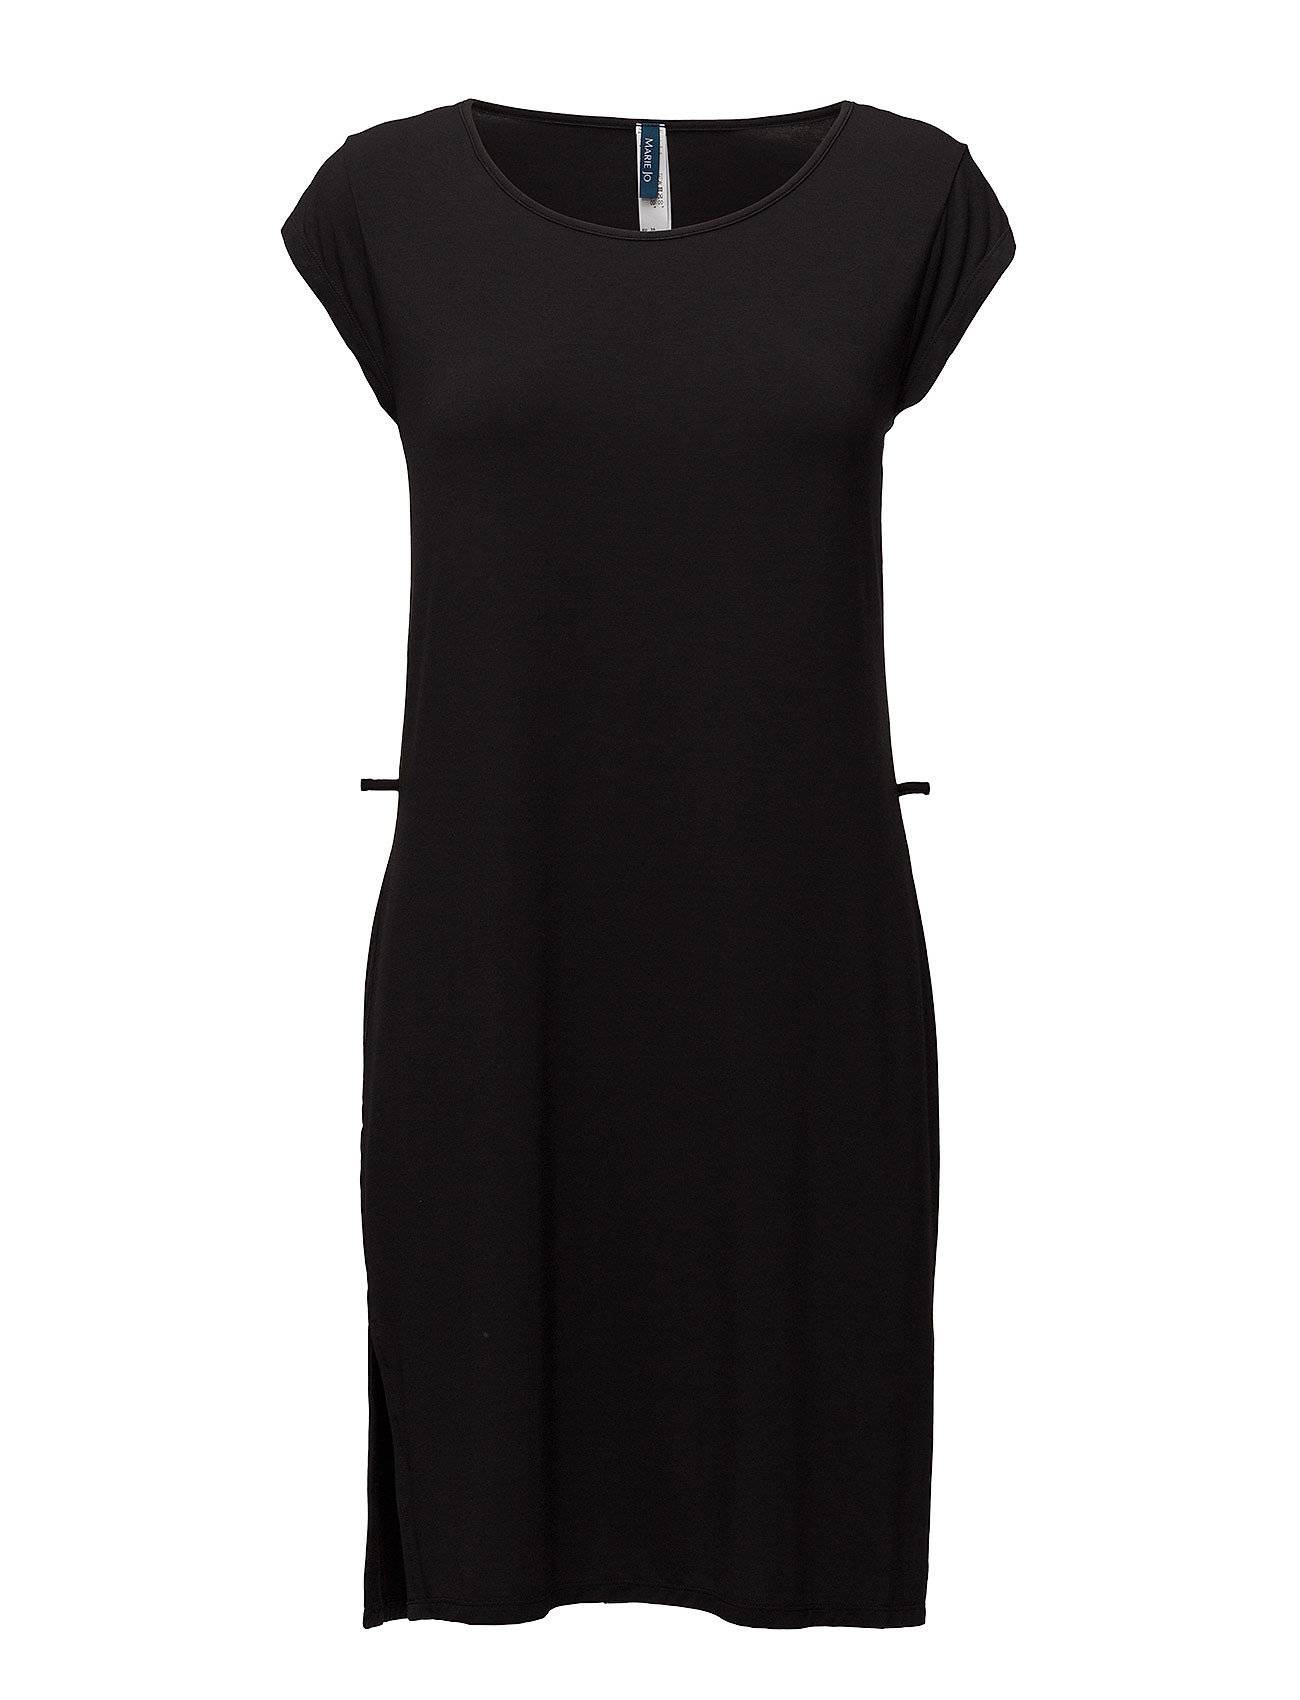 Marie Jo Isabelle Black Beach Dress